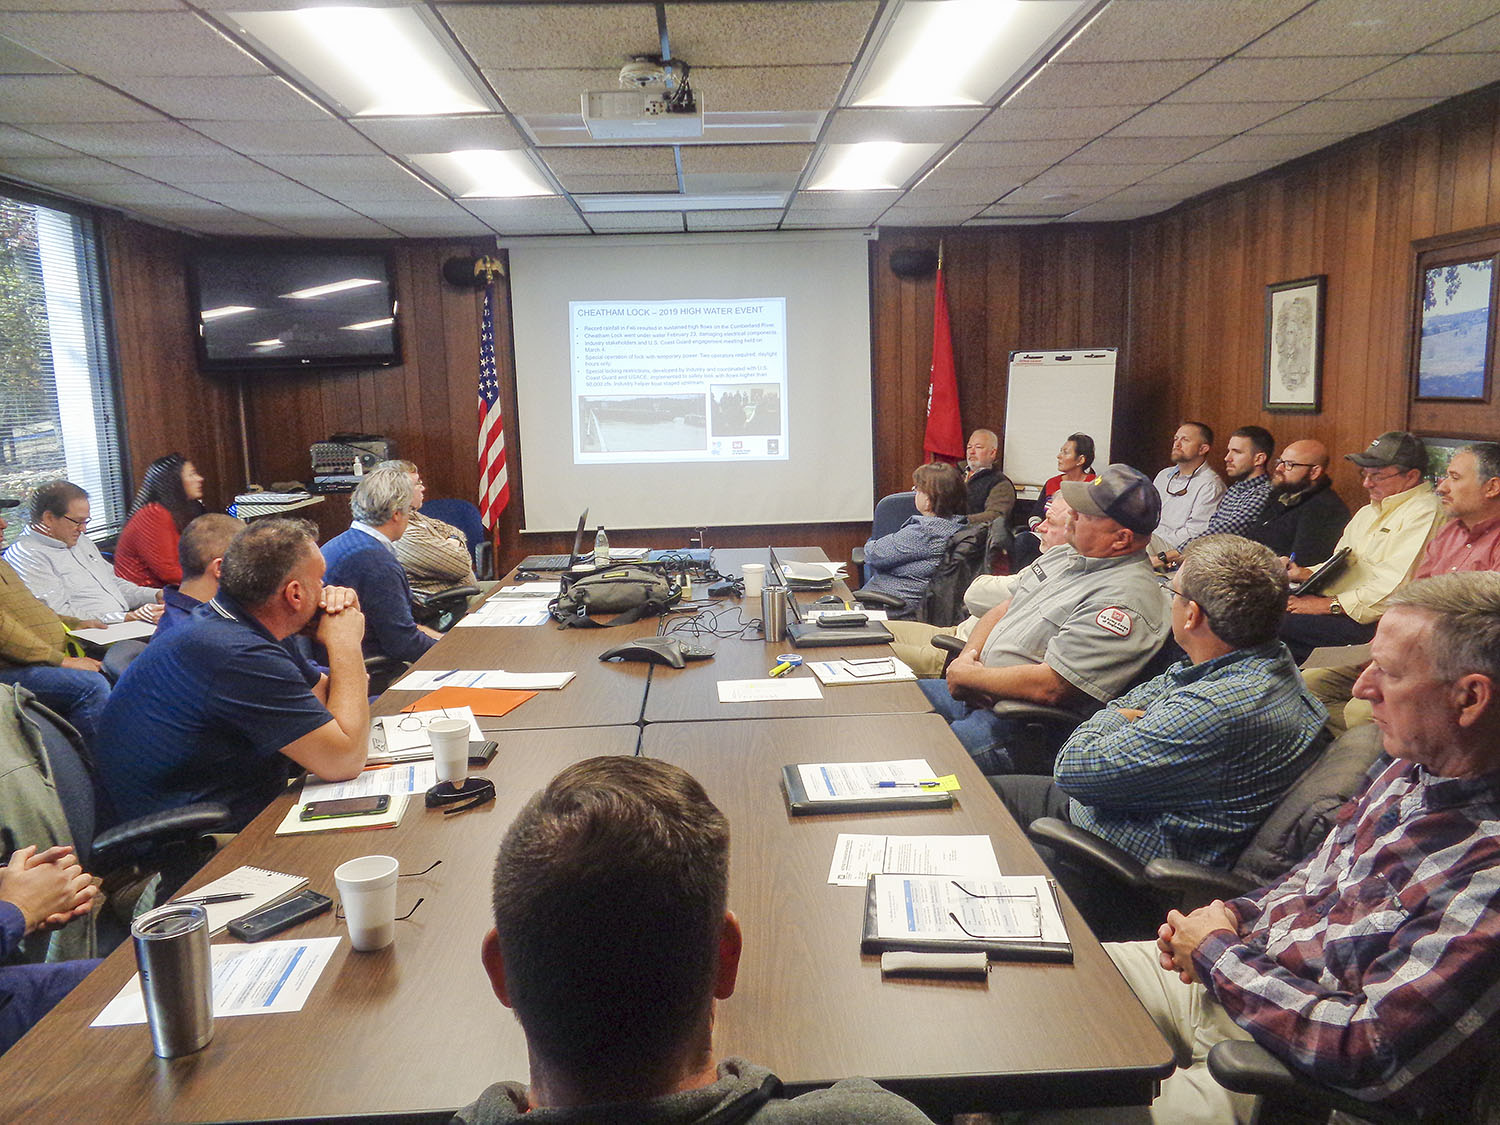 More than 30 people crowd into a meeting room at the Lake Barkley Resource Manager's Office Nov. 14 for the Fall Semi-Annual Navigation Meeting. The meeting included timetables for construction projects that could affect navigation on the inland waterways. (Photo by Shelley Byrne)